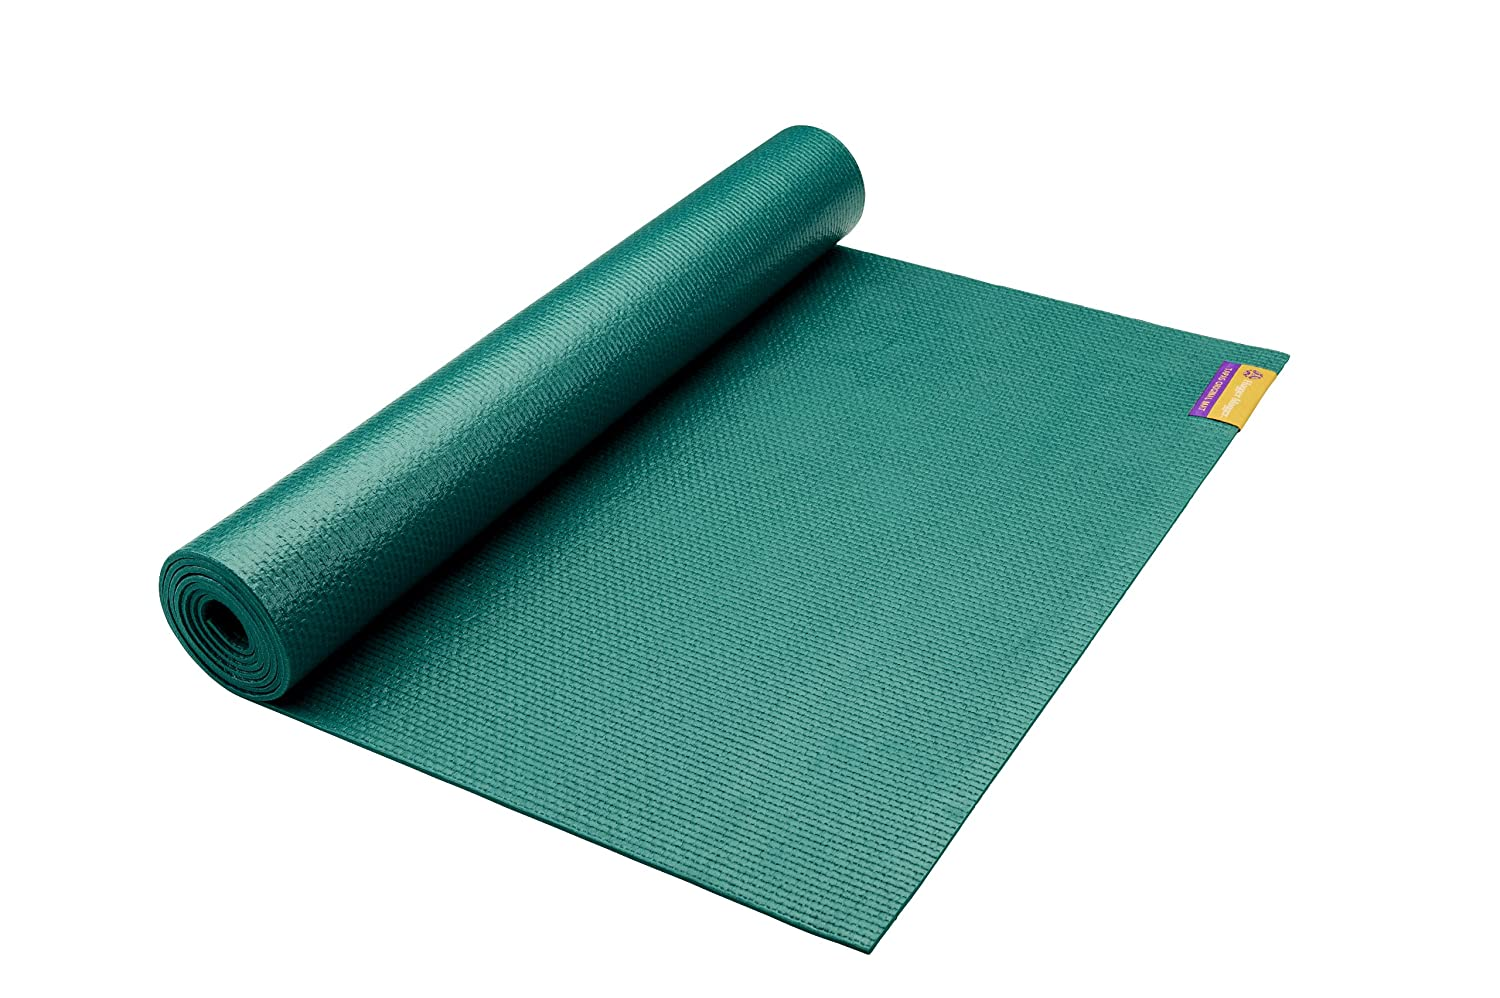 pid online yoga fitness buy products training mats graphic performance core india mat abs nike